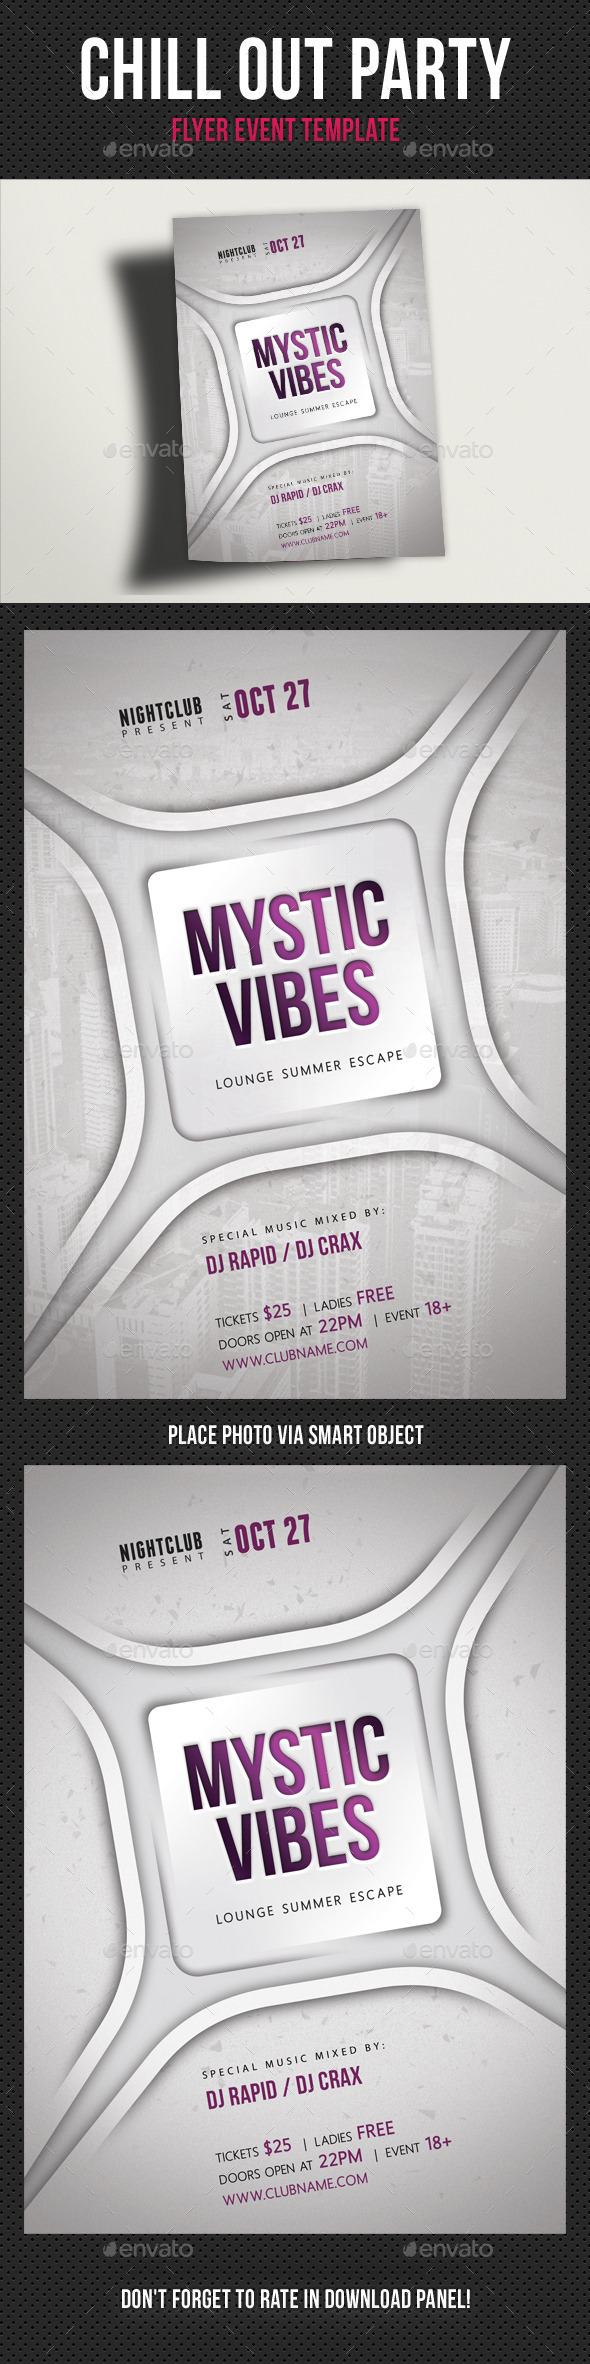 Chill Out Mystic Vibes Flyer - Clubs & Parties Events